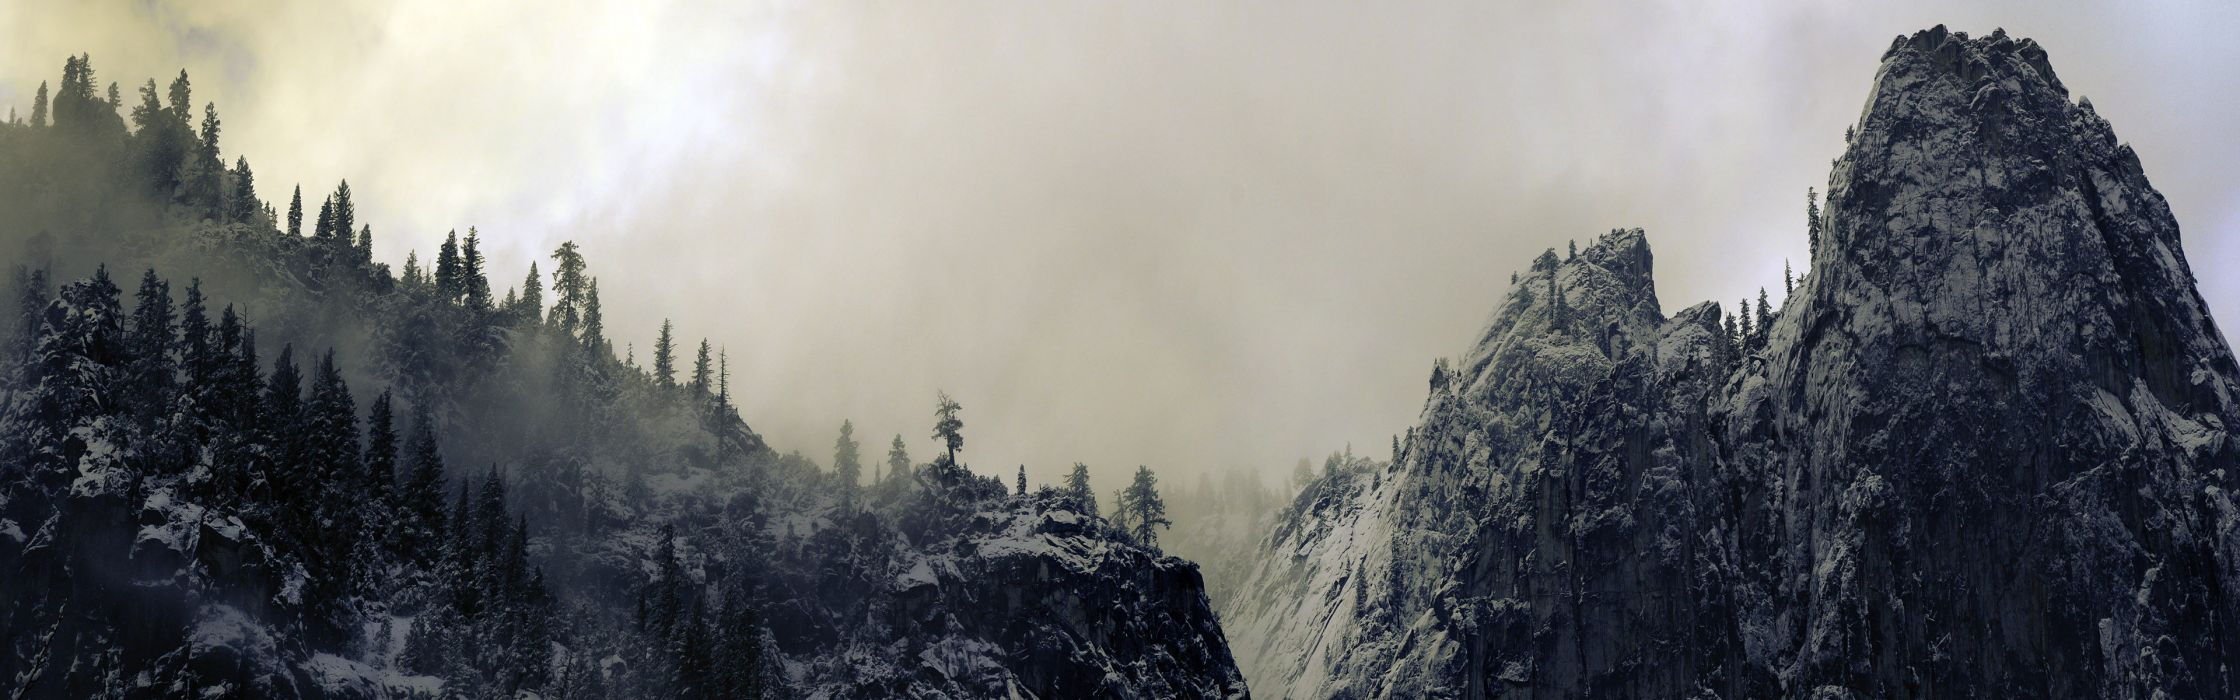 landscapes snow trees California panorama snow landscapes Yosemite National Park wallpaper